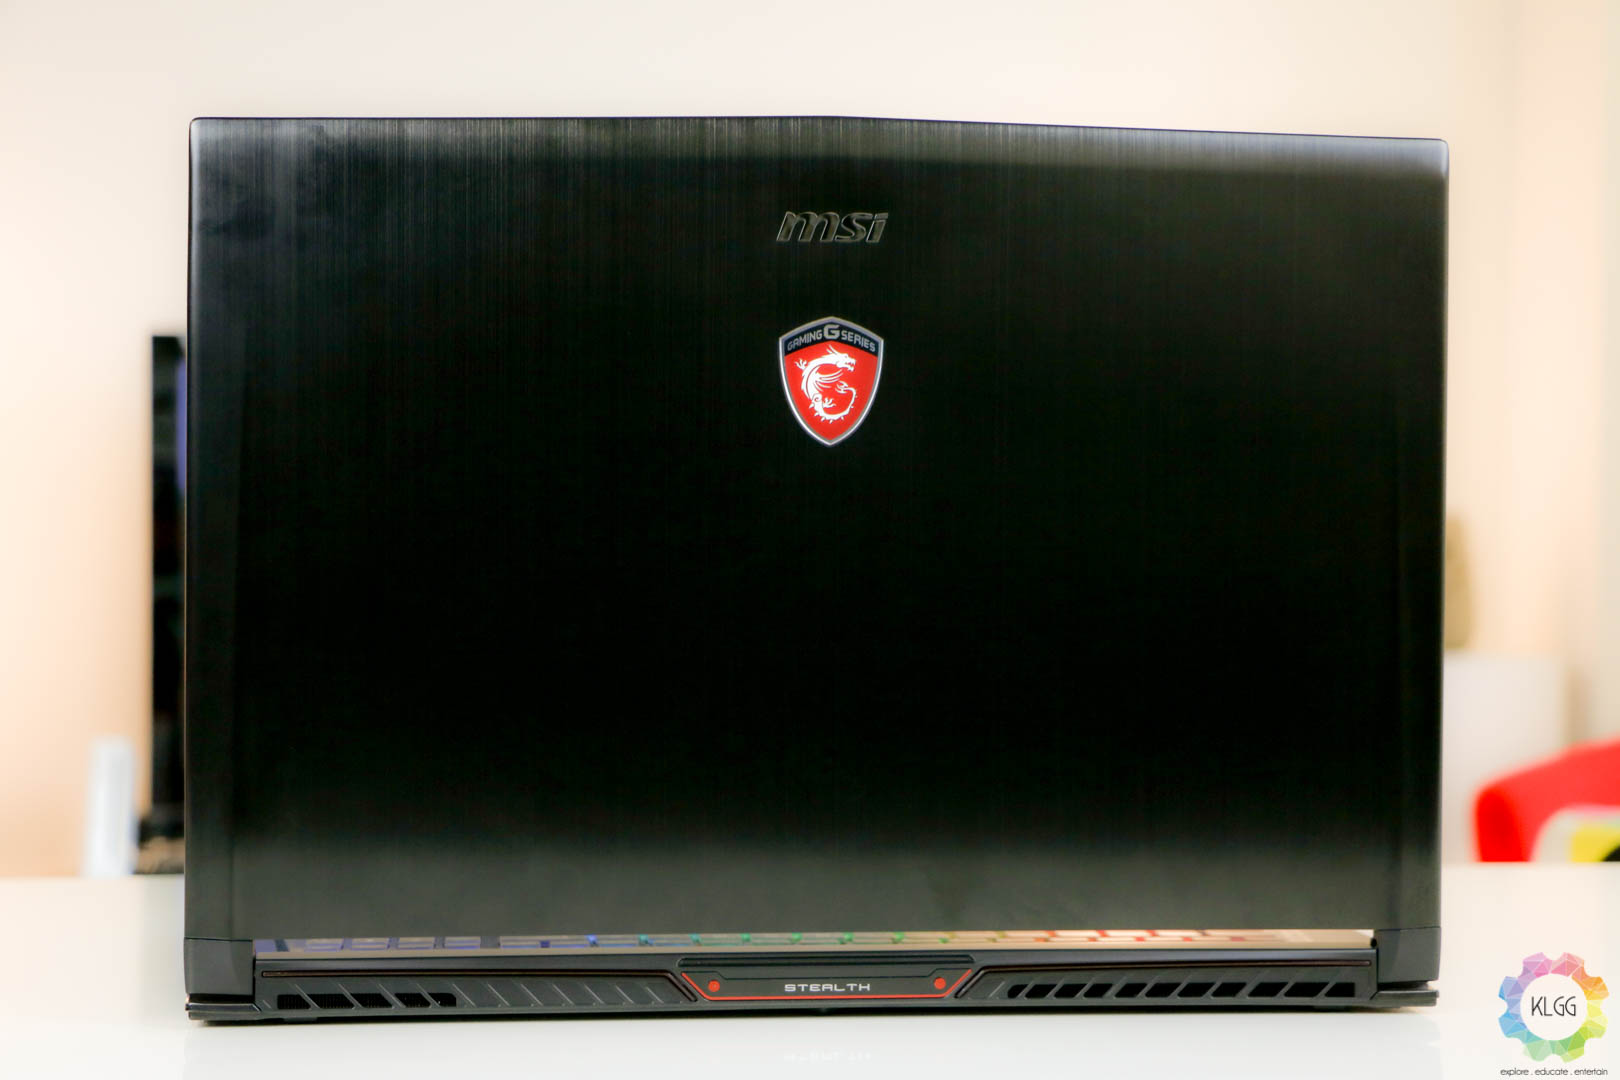 MSI GS73VR 6RF Stealth Pro Review: Best Slim 17-inch Gaming Notebook 1